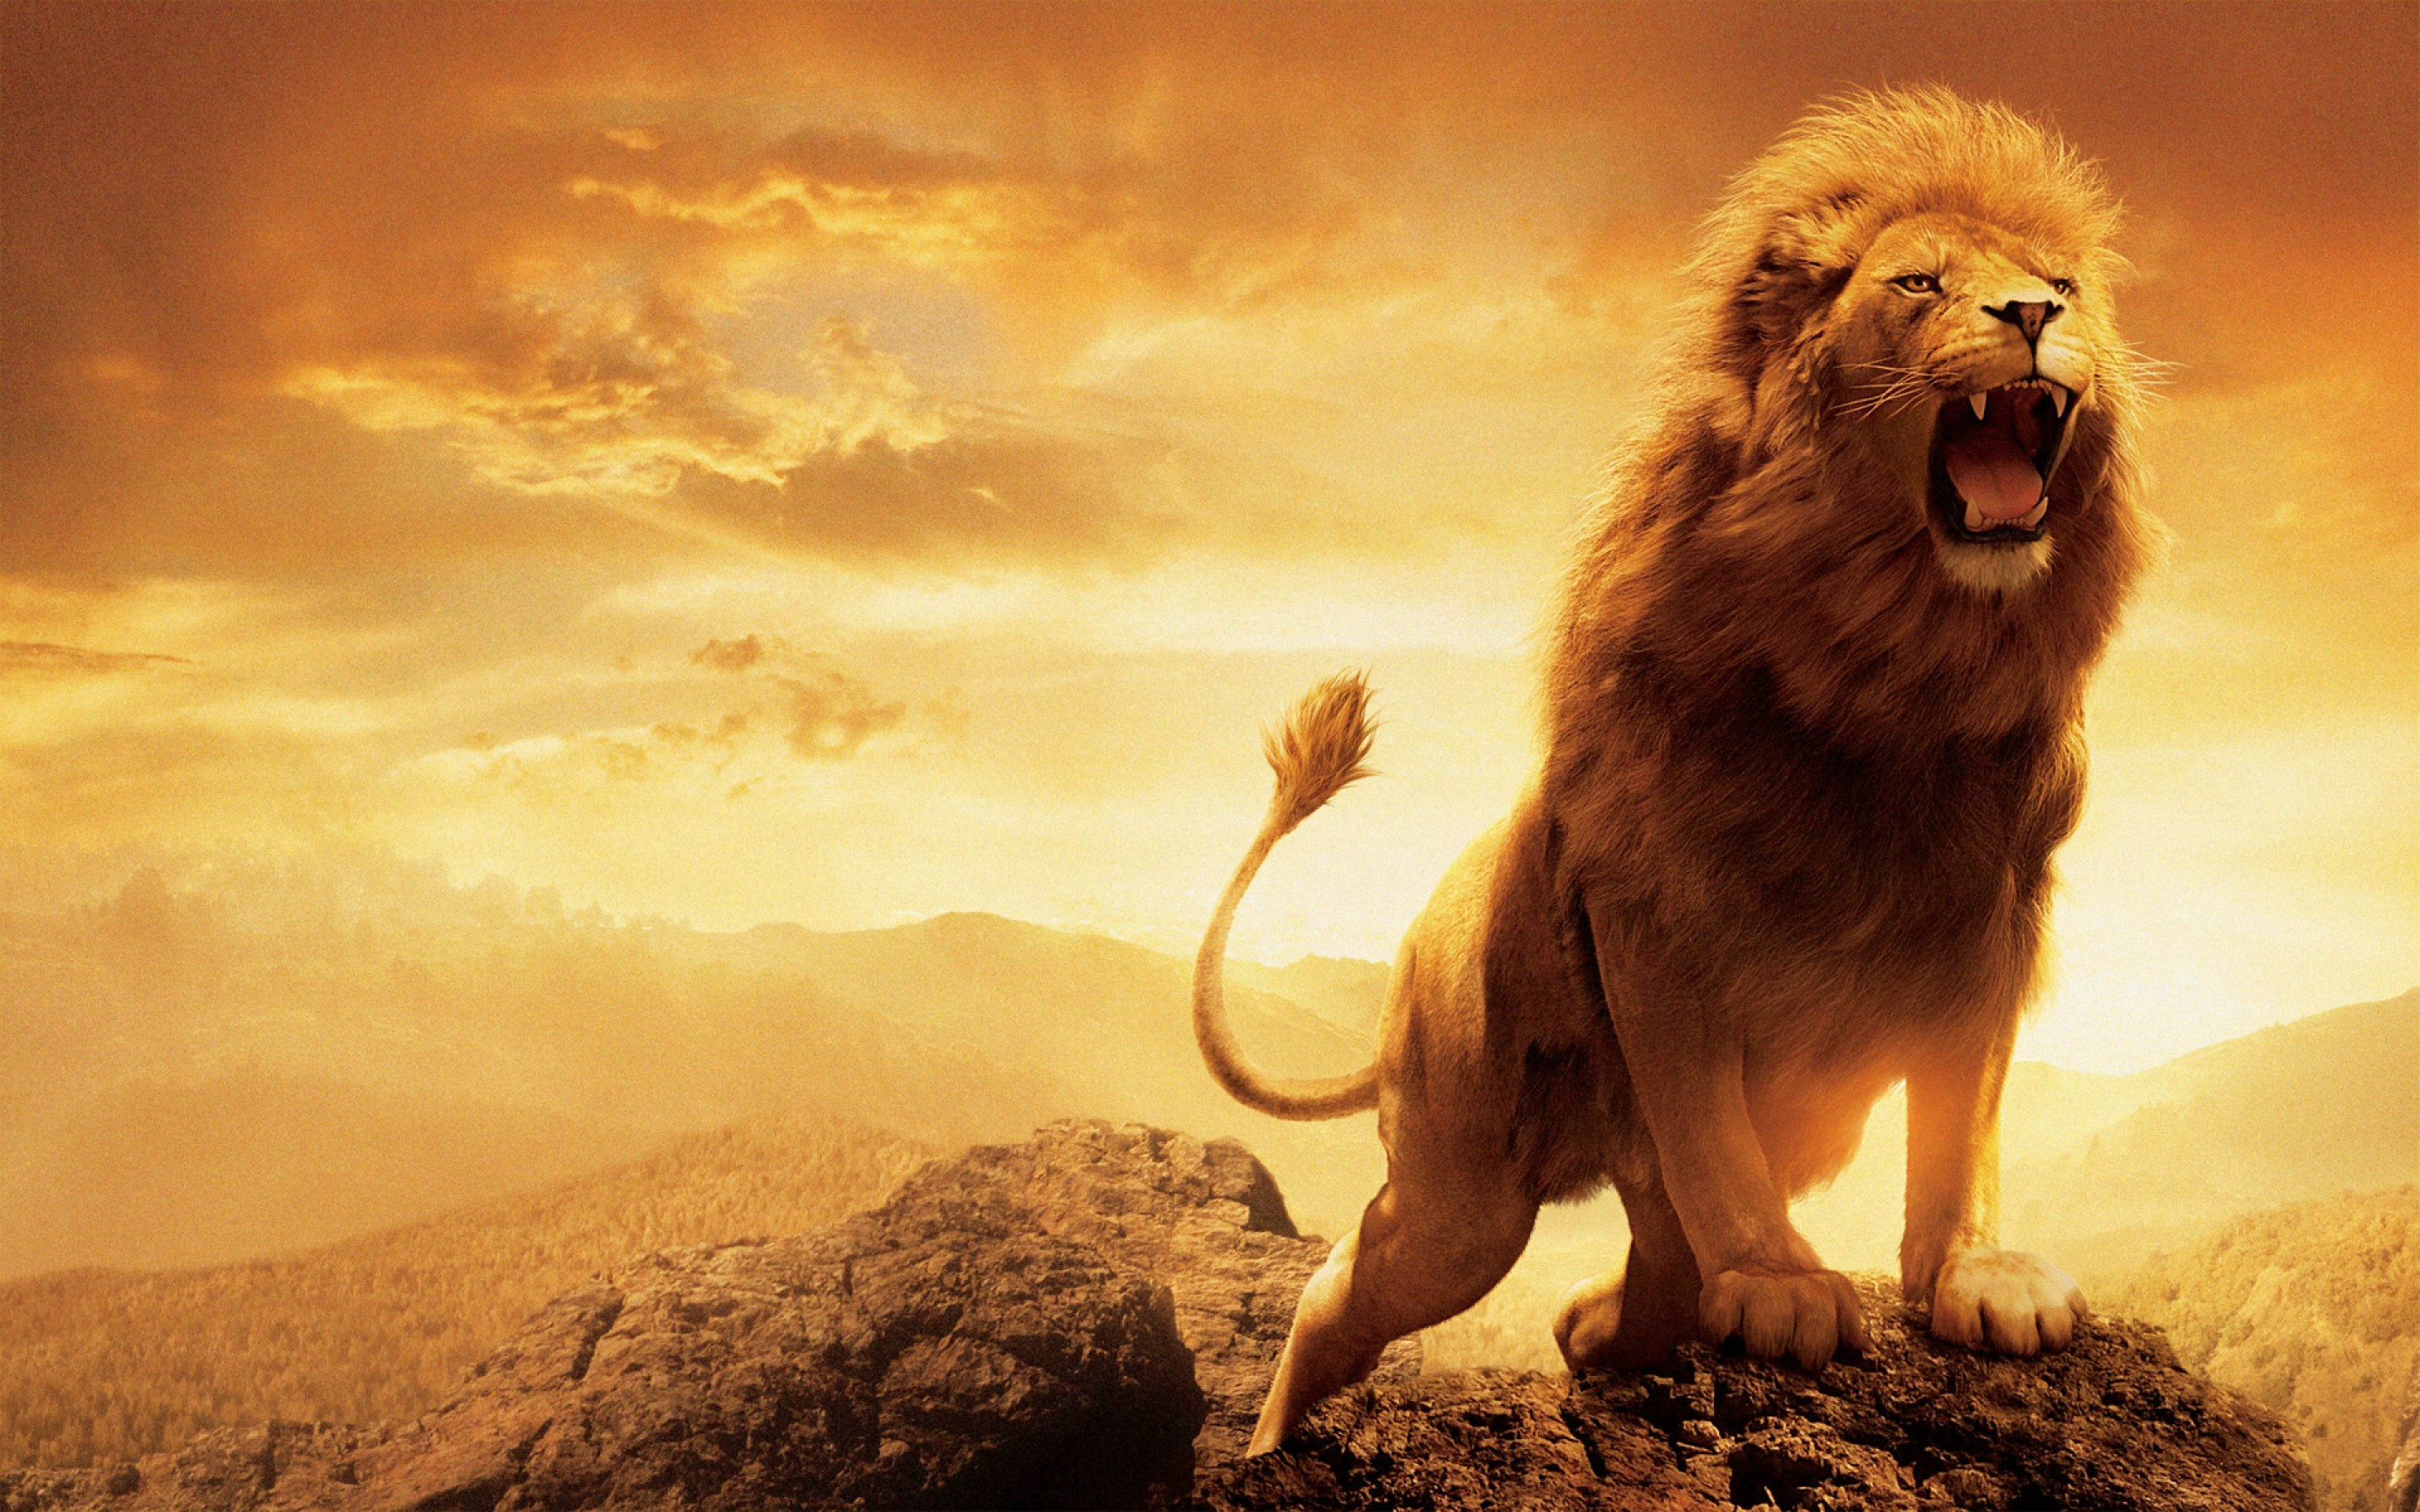 wallpaper.wiki-Aslan-Narnia-HD-Wallpaper-PIC-WPC0011246 ... for Narnia Aslan Wallpaper  186ref